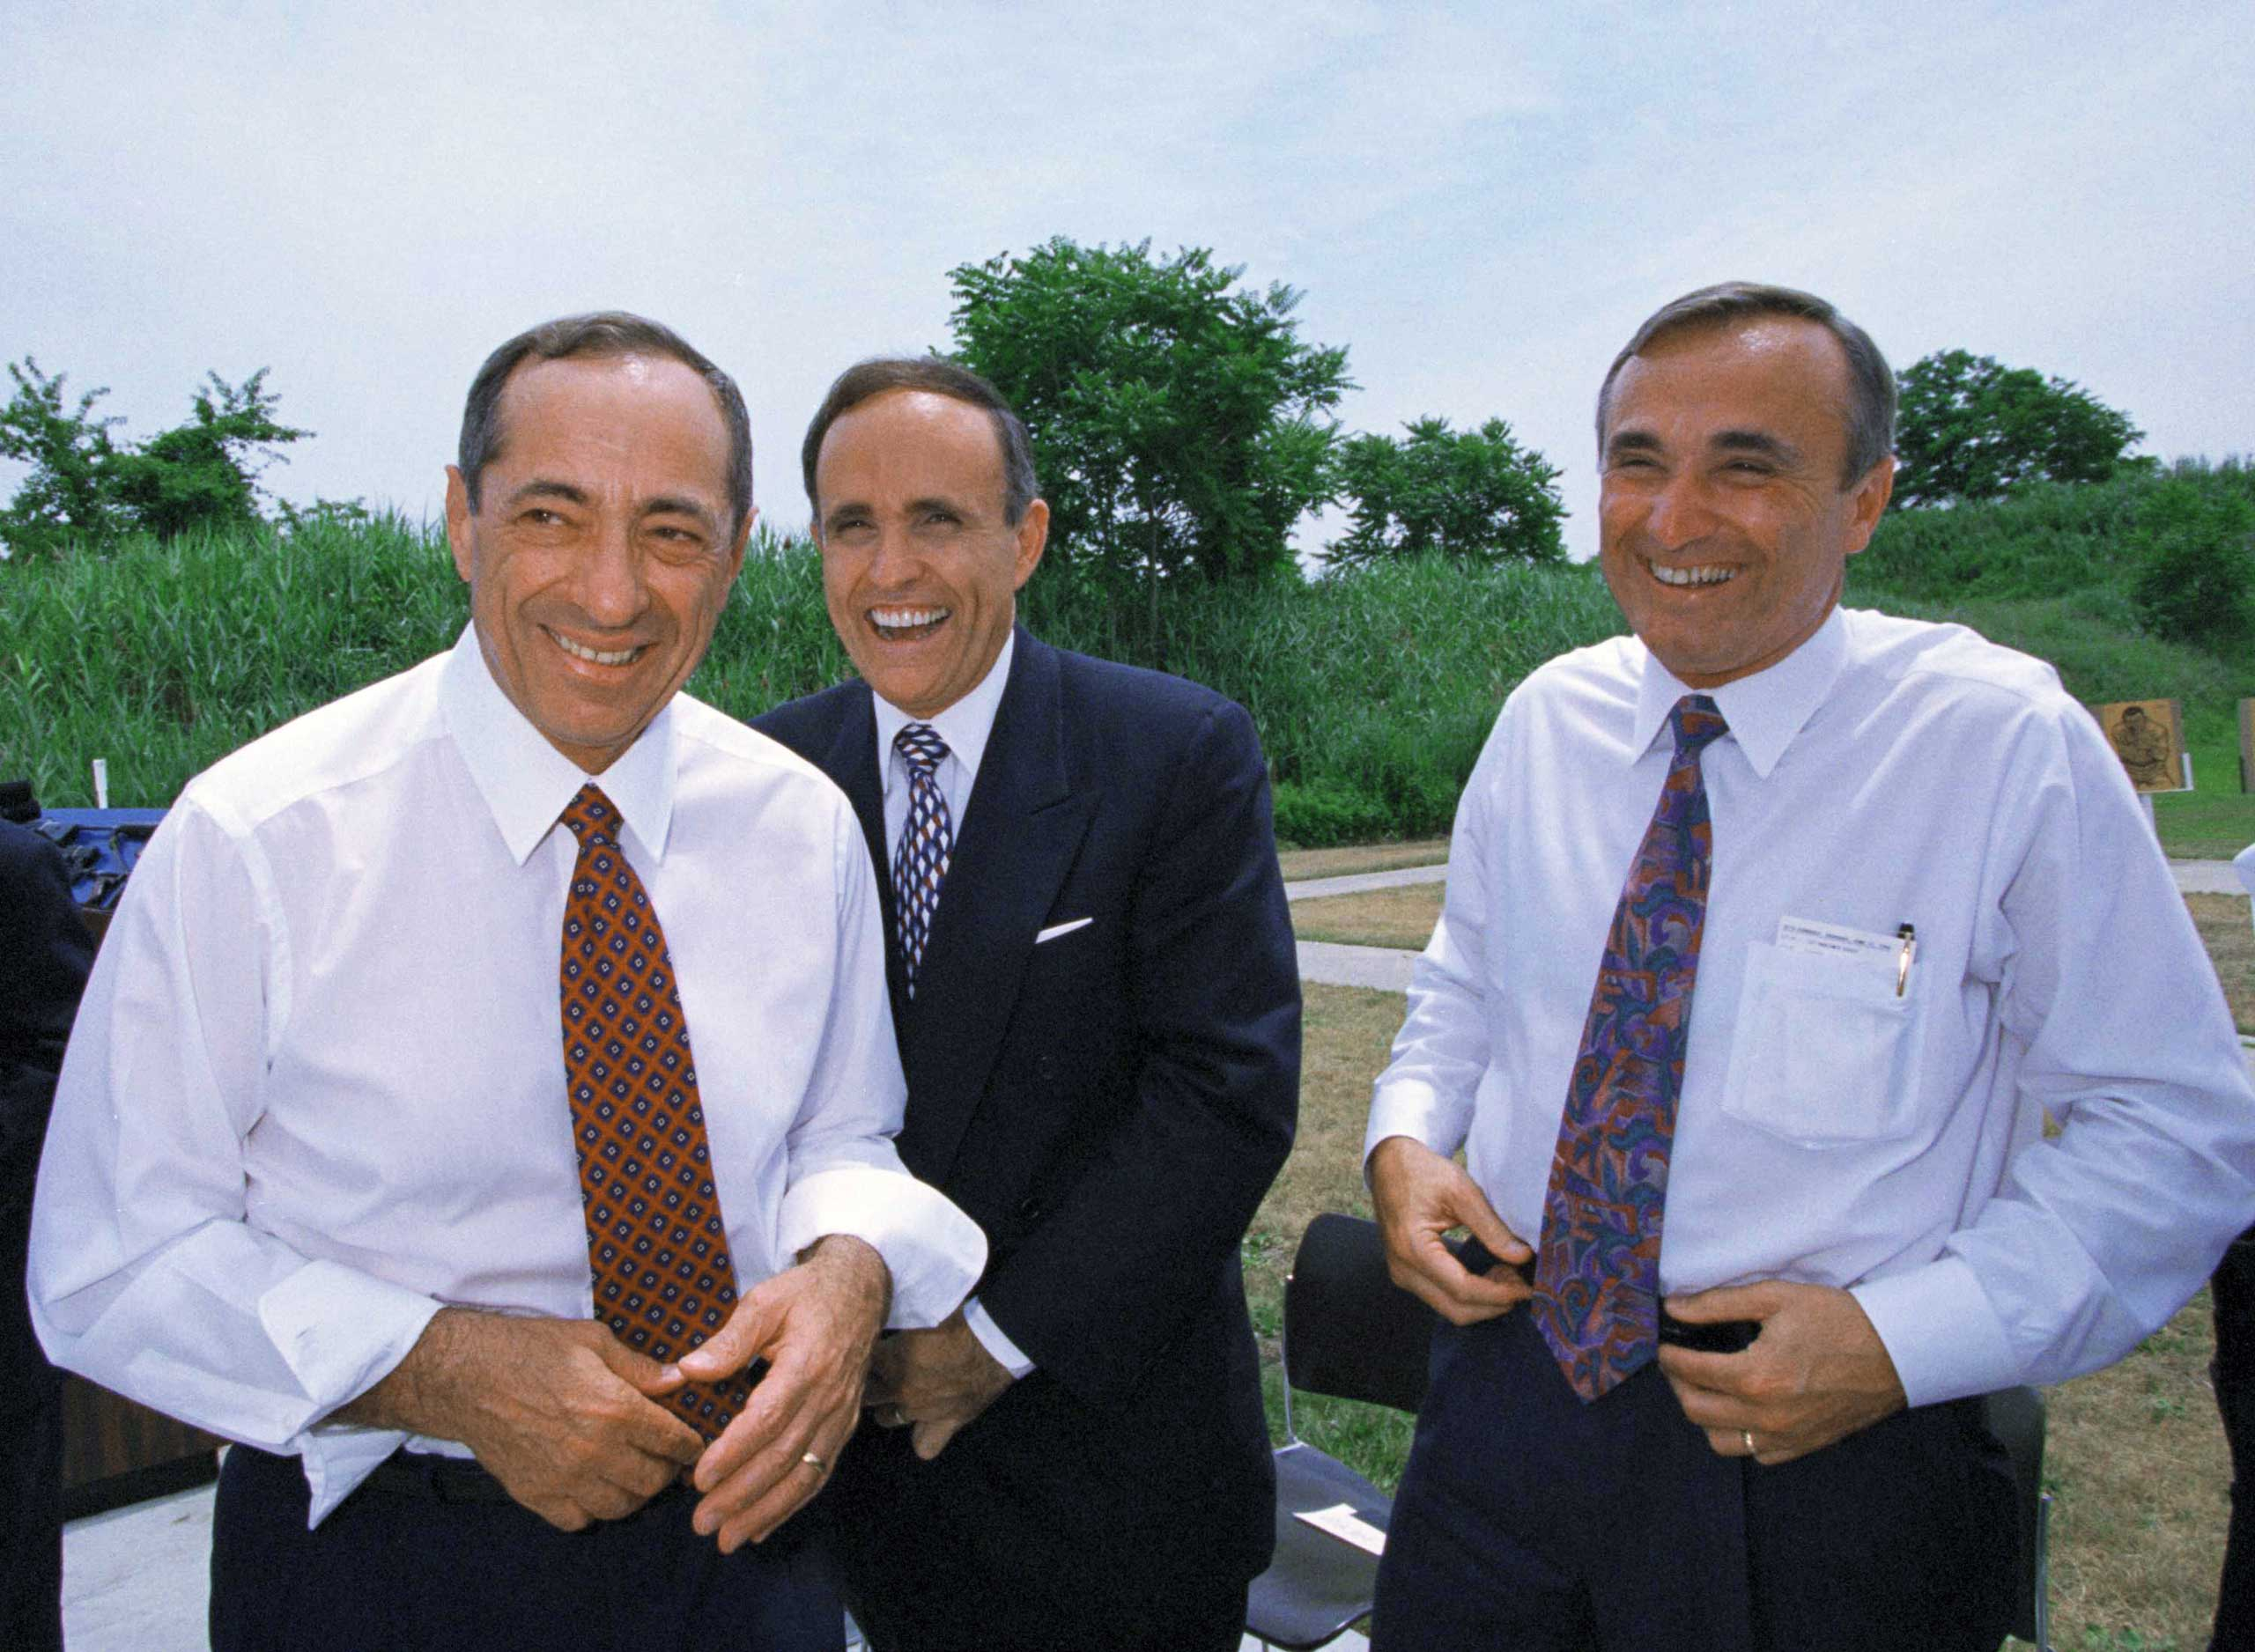 New York Governor Mario Cuomo, left, New York City Mayor Rudolph Giuliani, center, and New York City Police Commissioner William Bratton laugh during a light moment while touring the NYPD's shooting range in New York City on June 23, 1994.